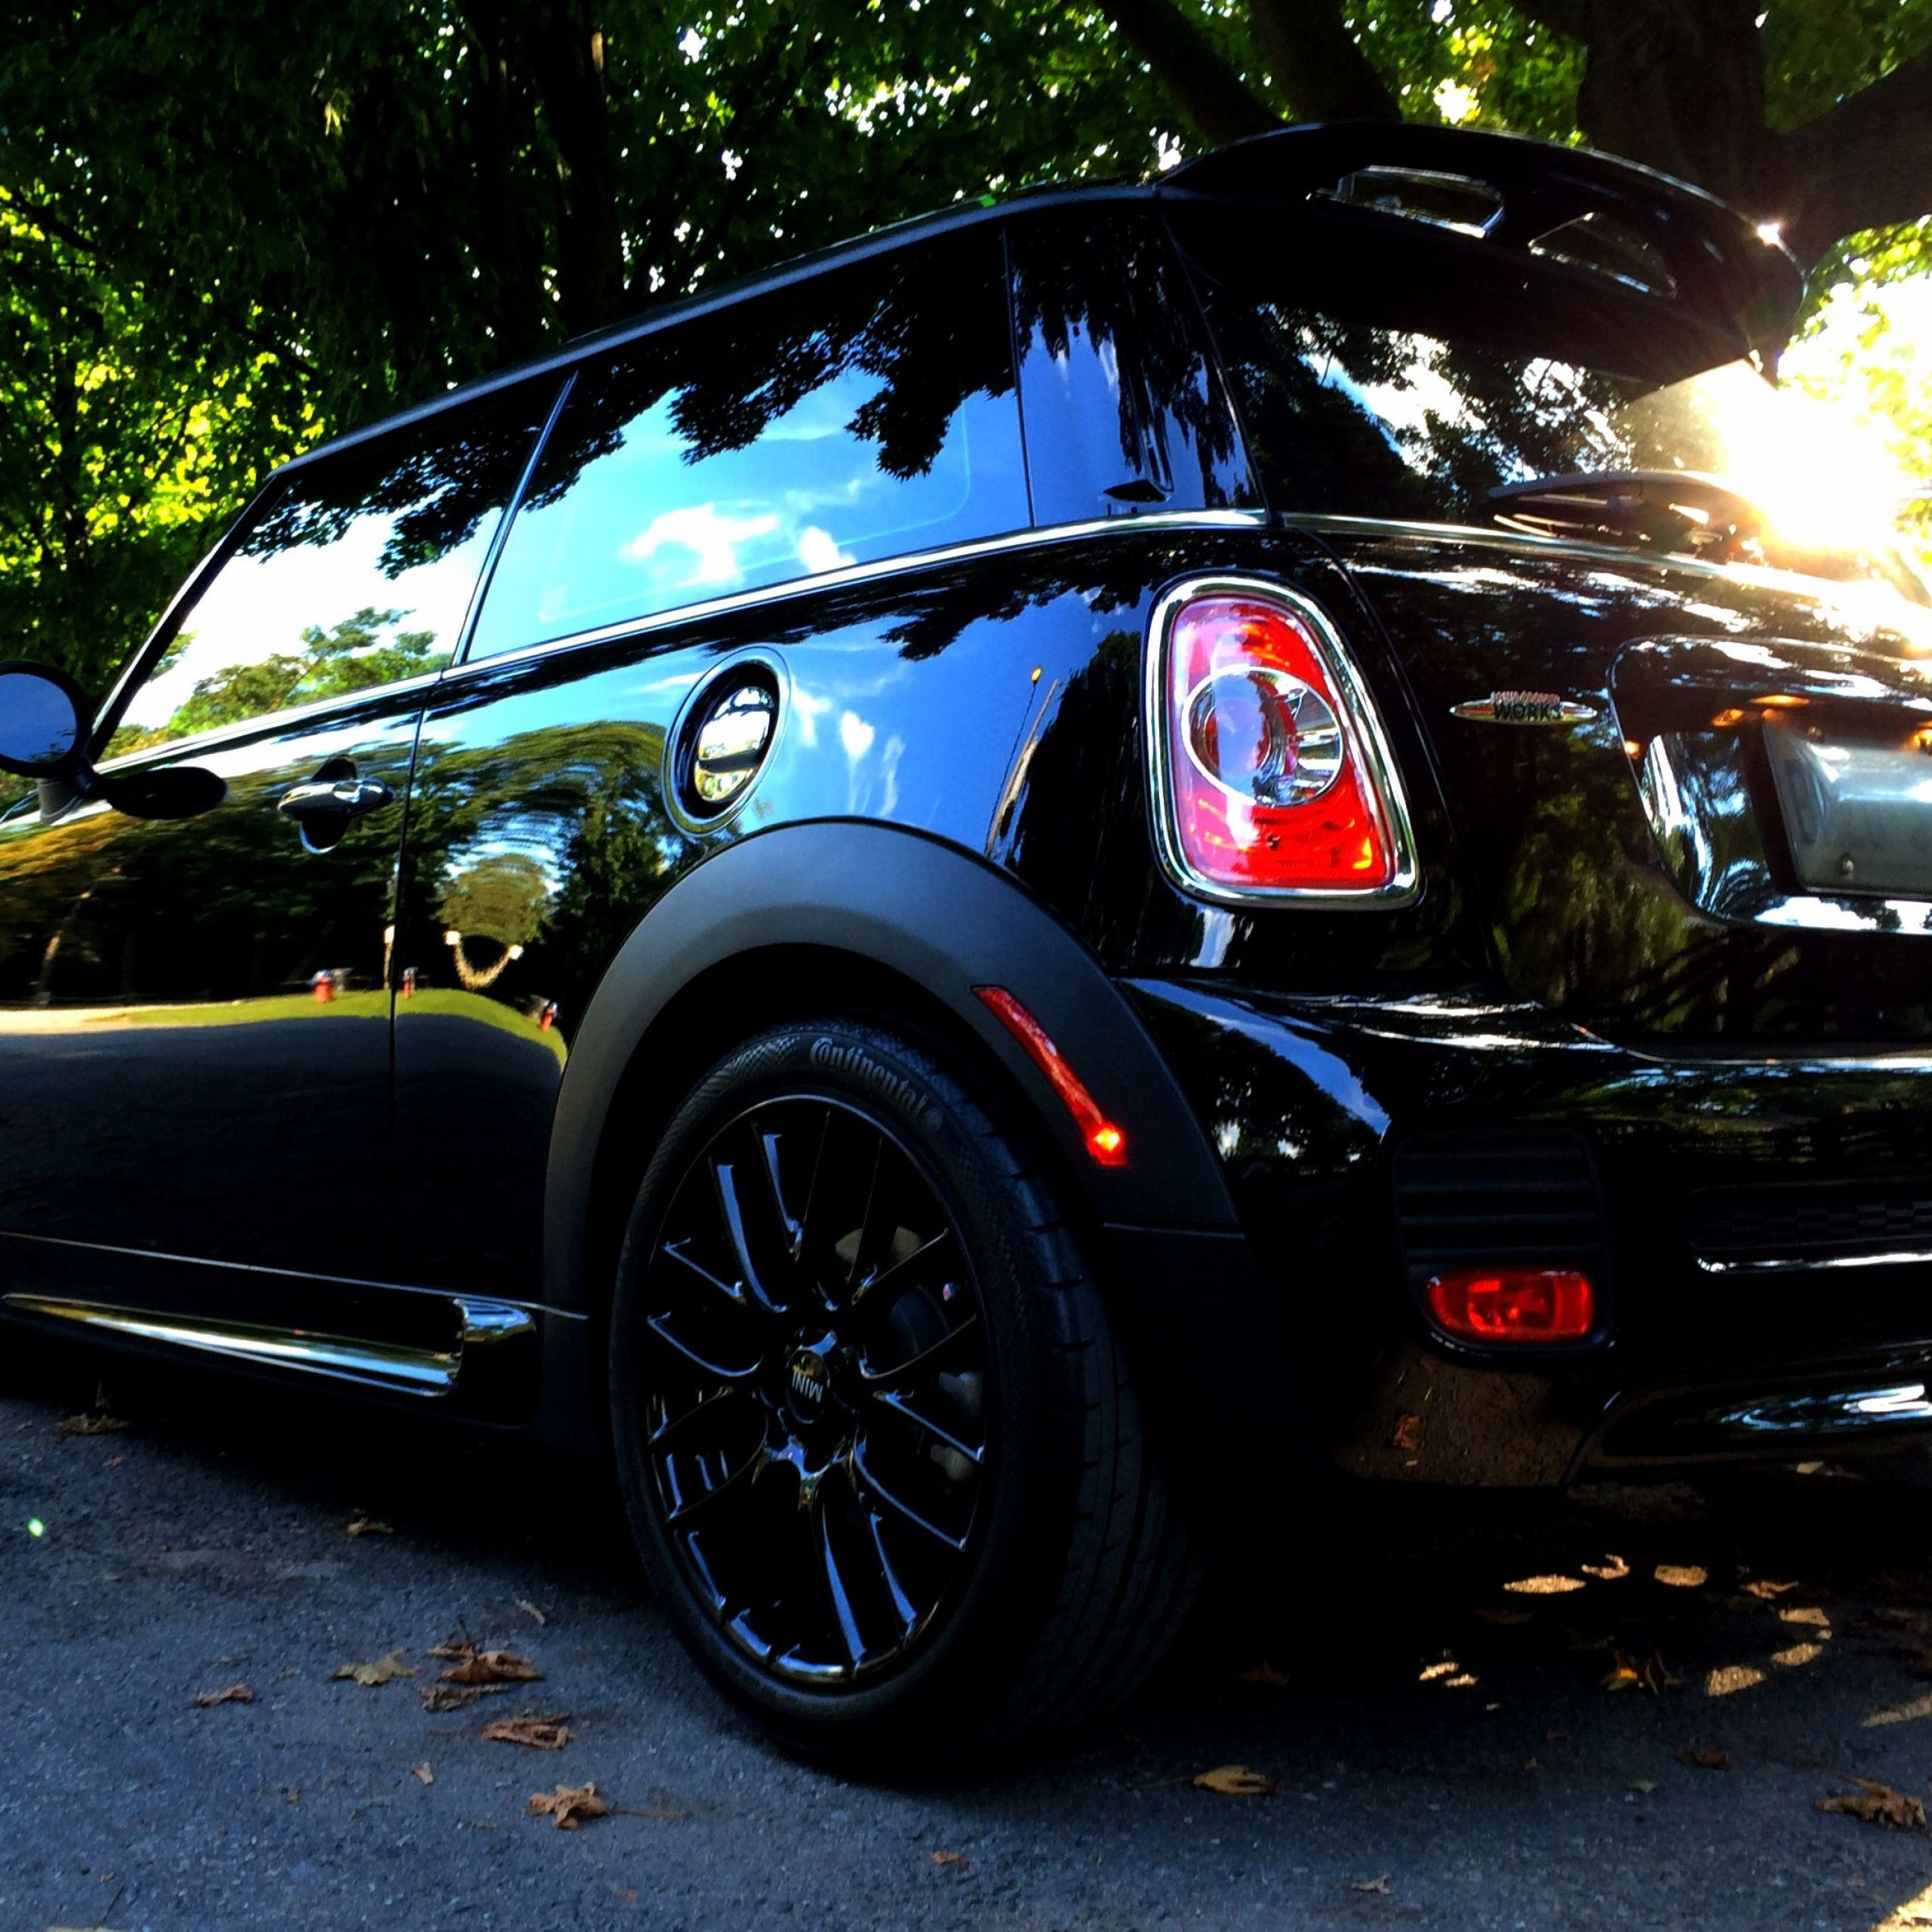 2015 Mini Cooper Best Of Mini Cooper Black Cars Look Better In the Shade